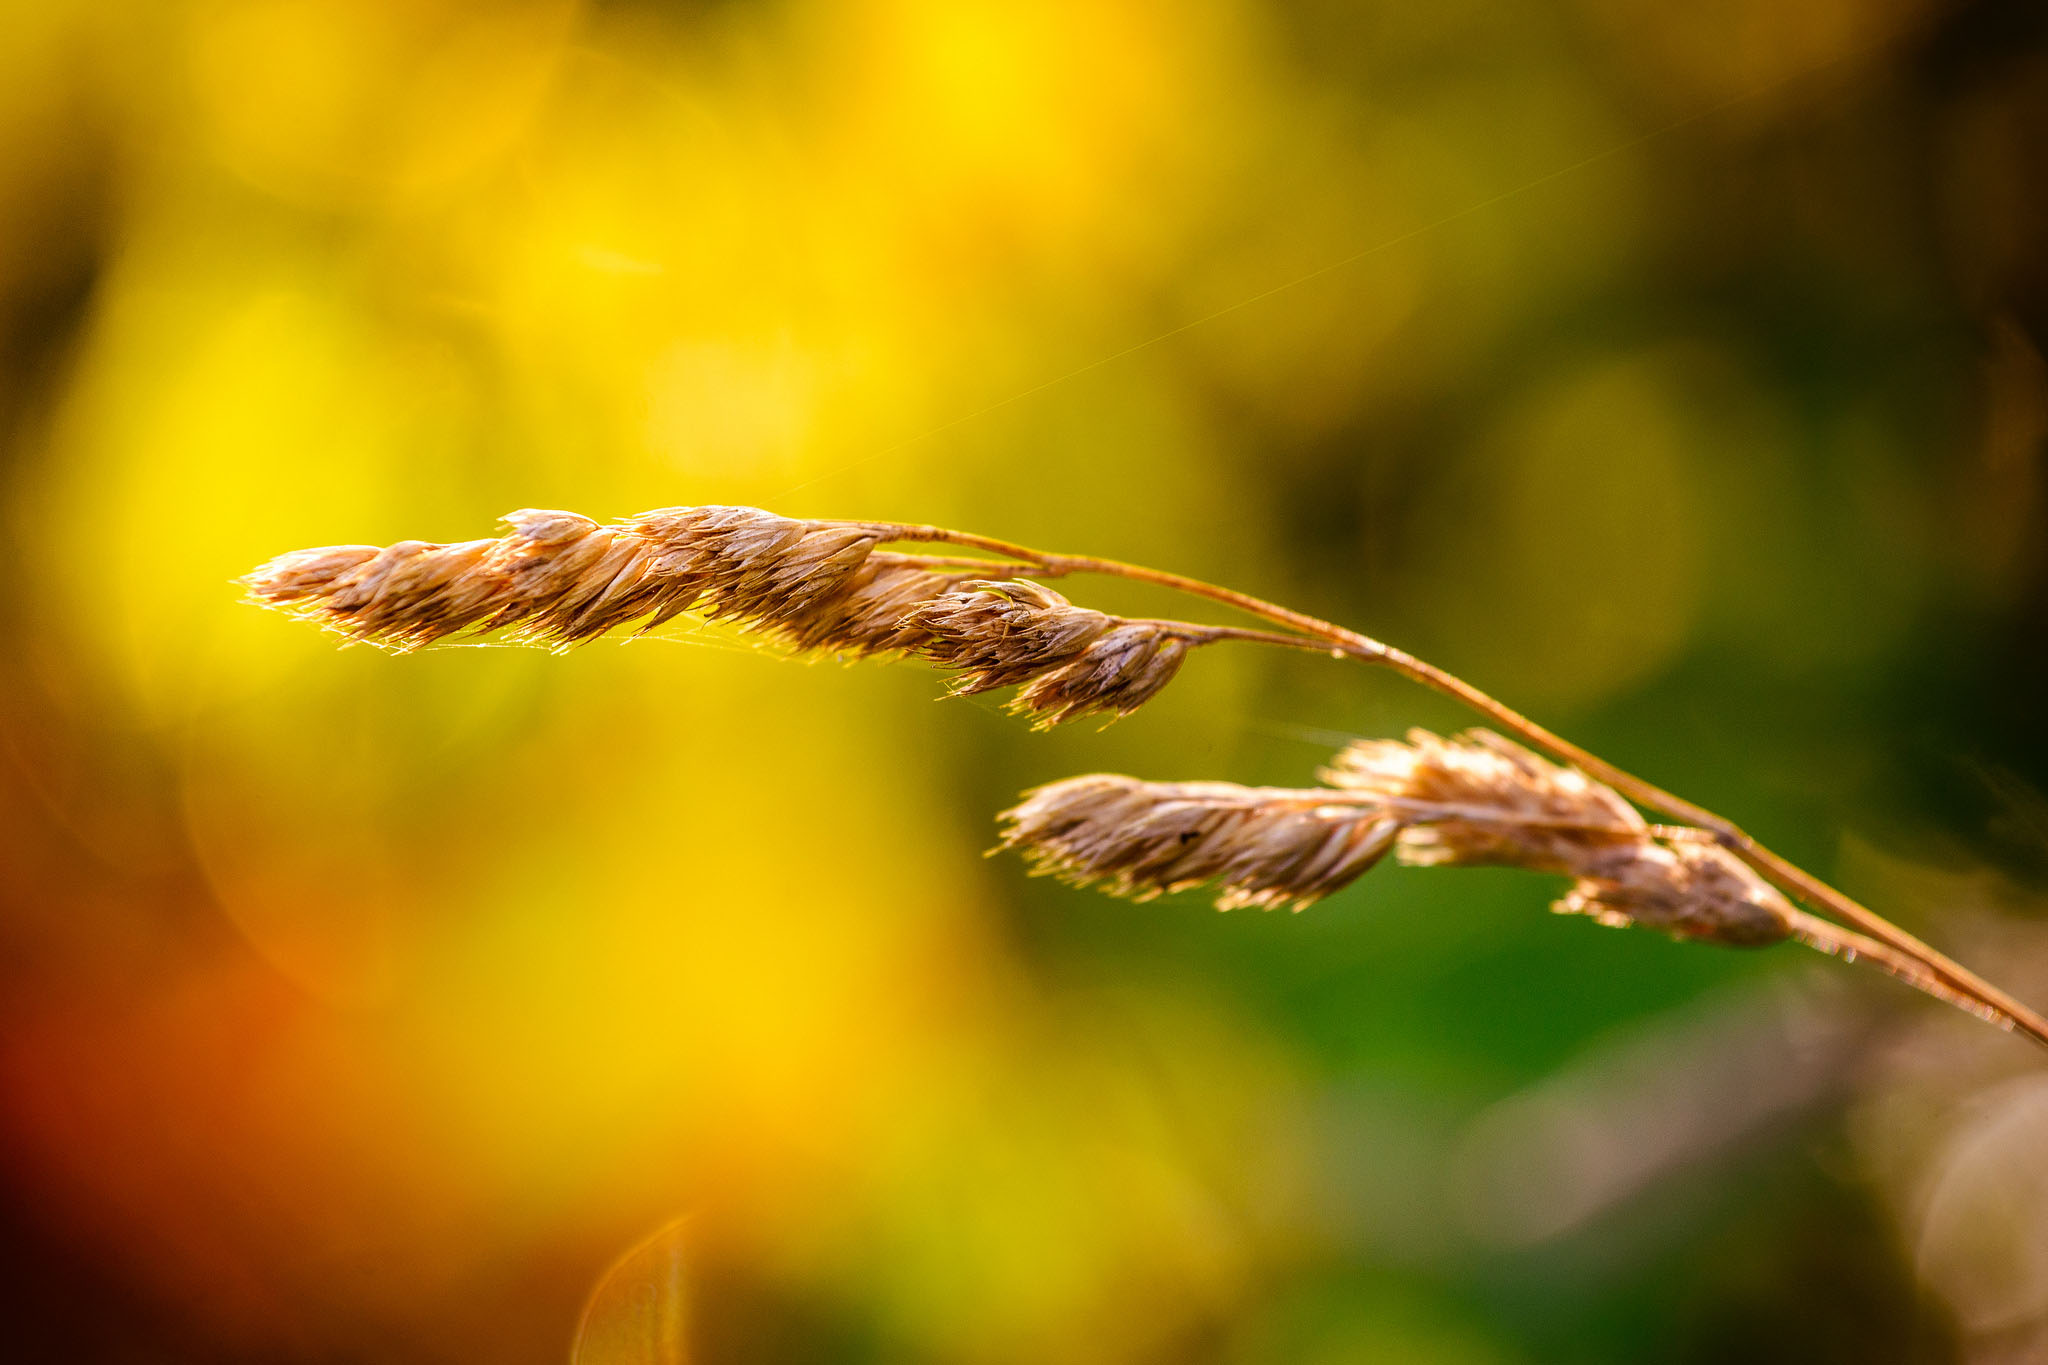 a close up image of wheat, out of focus background